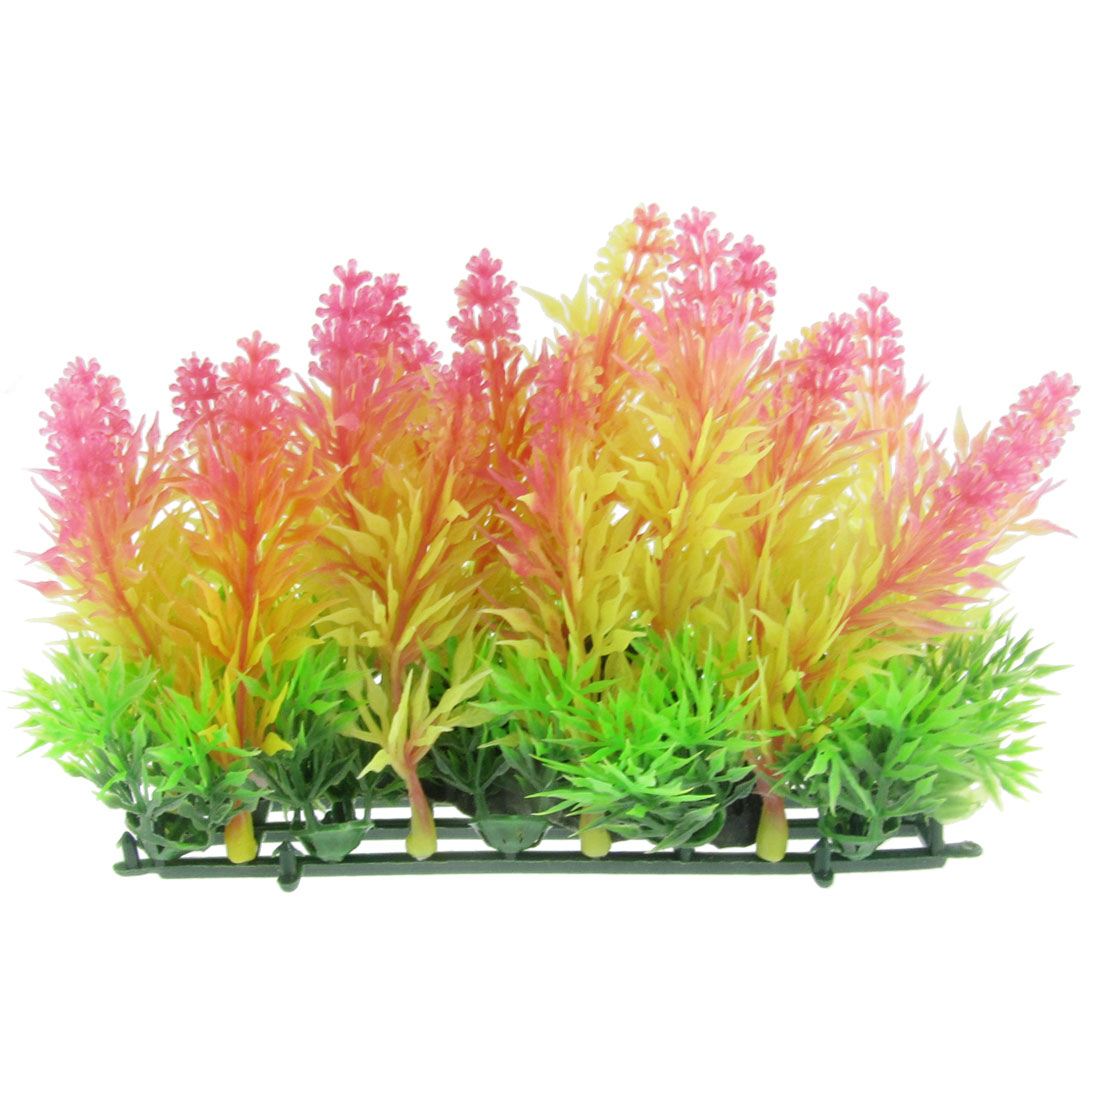 "3.9"" Height Fuchsia Yellow Artificial Water Plants Lawn Decor for Aquarium"